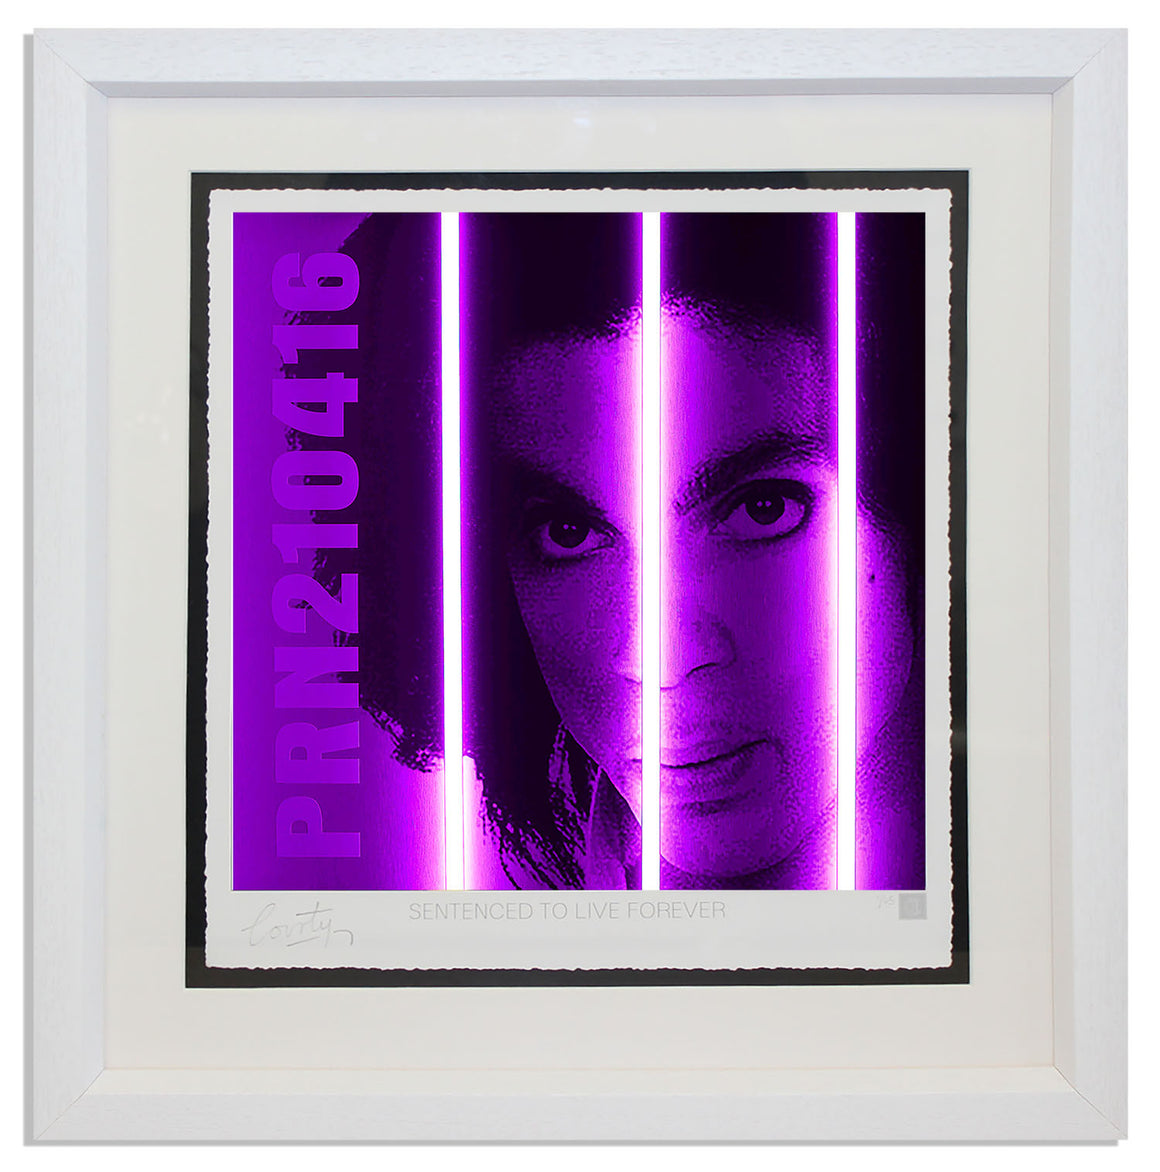 """Prince"" by Courty (FRAMED limited edition screen print)"